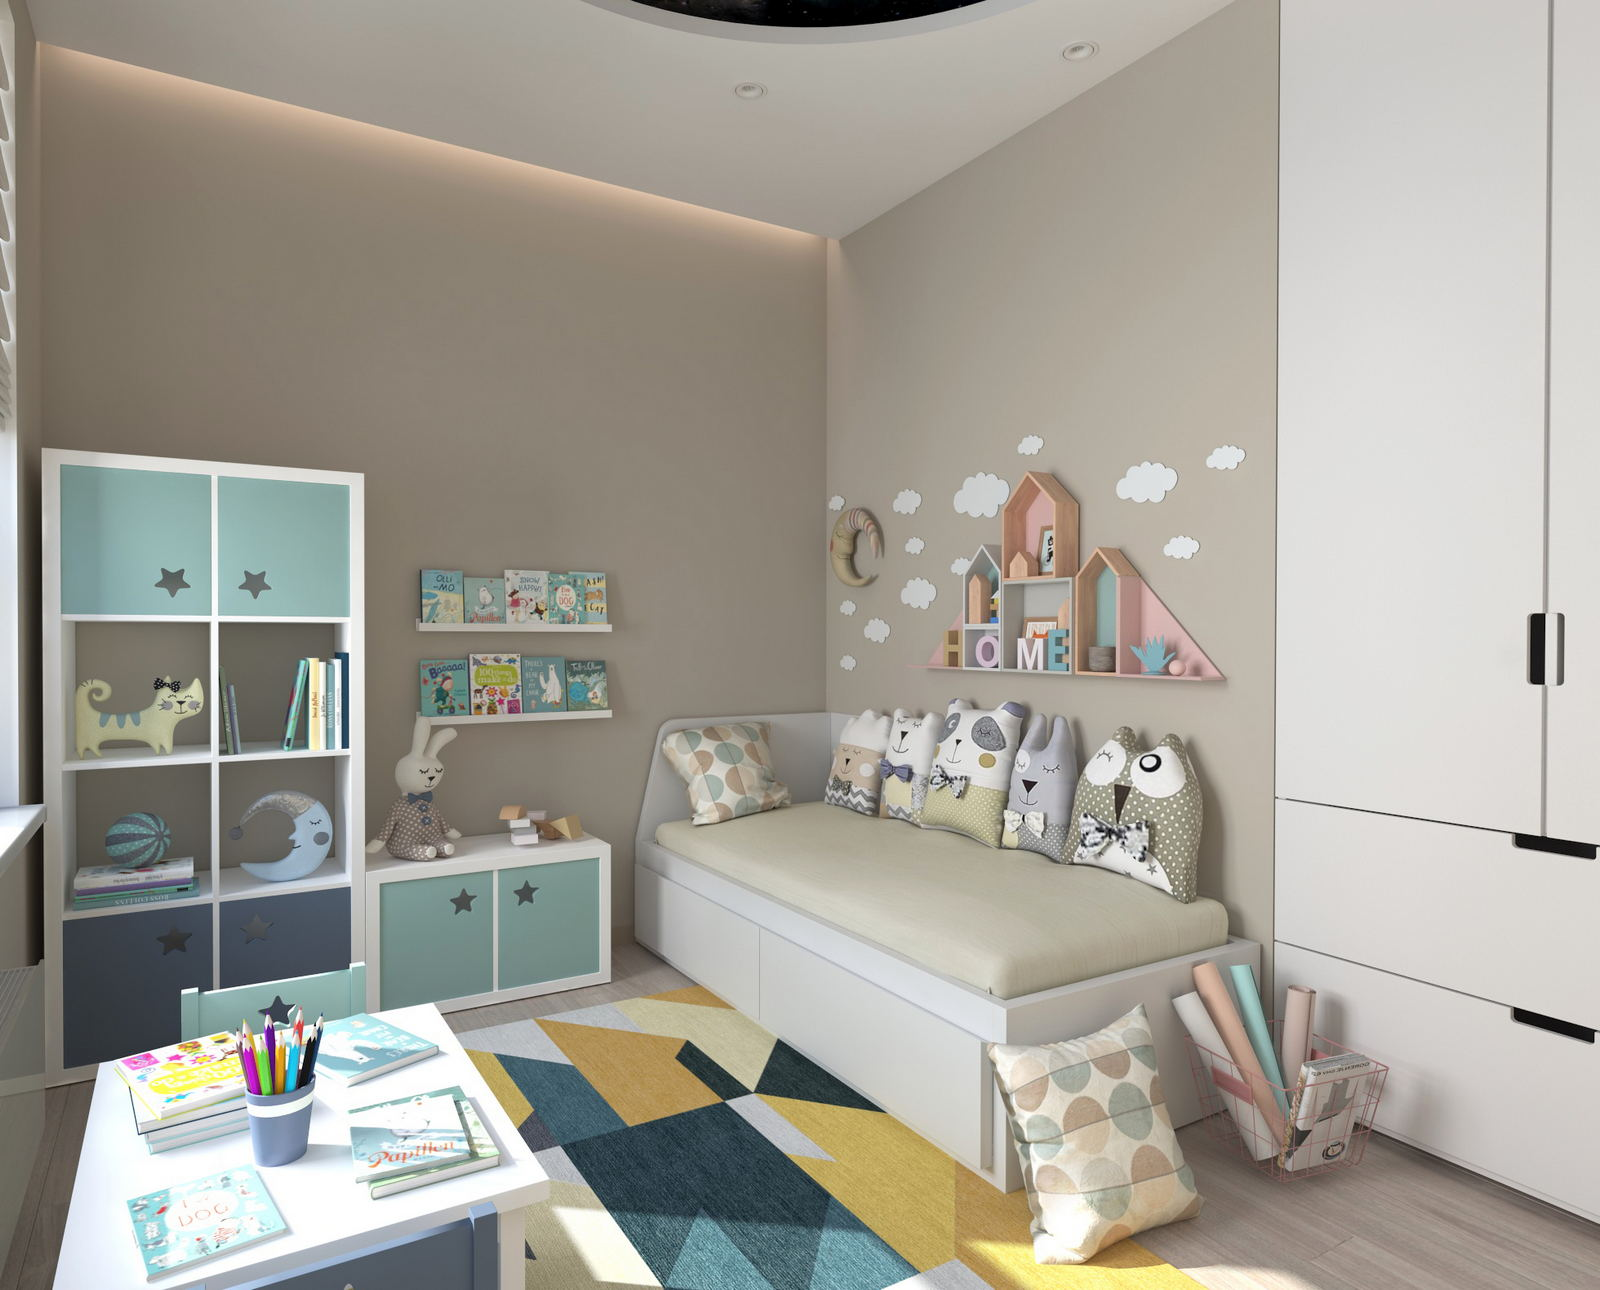 t_Kids_room_View_003.jpg